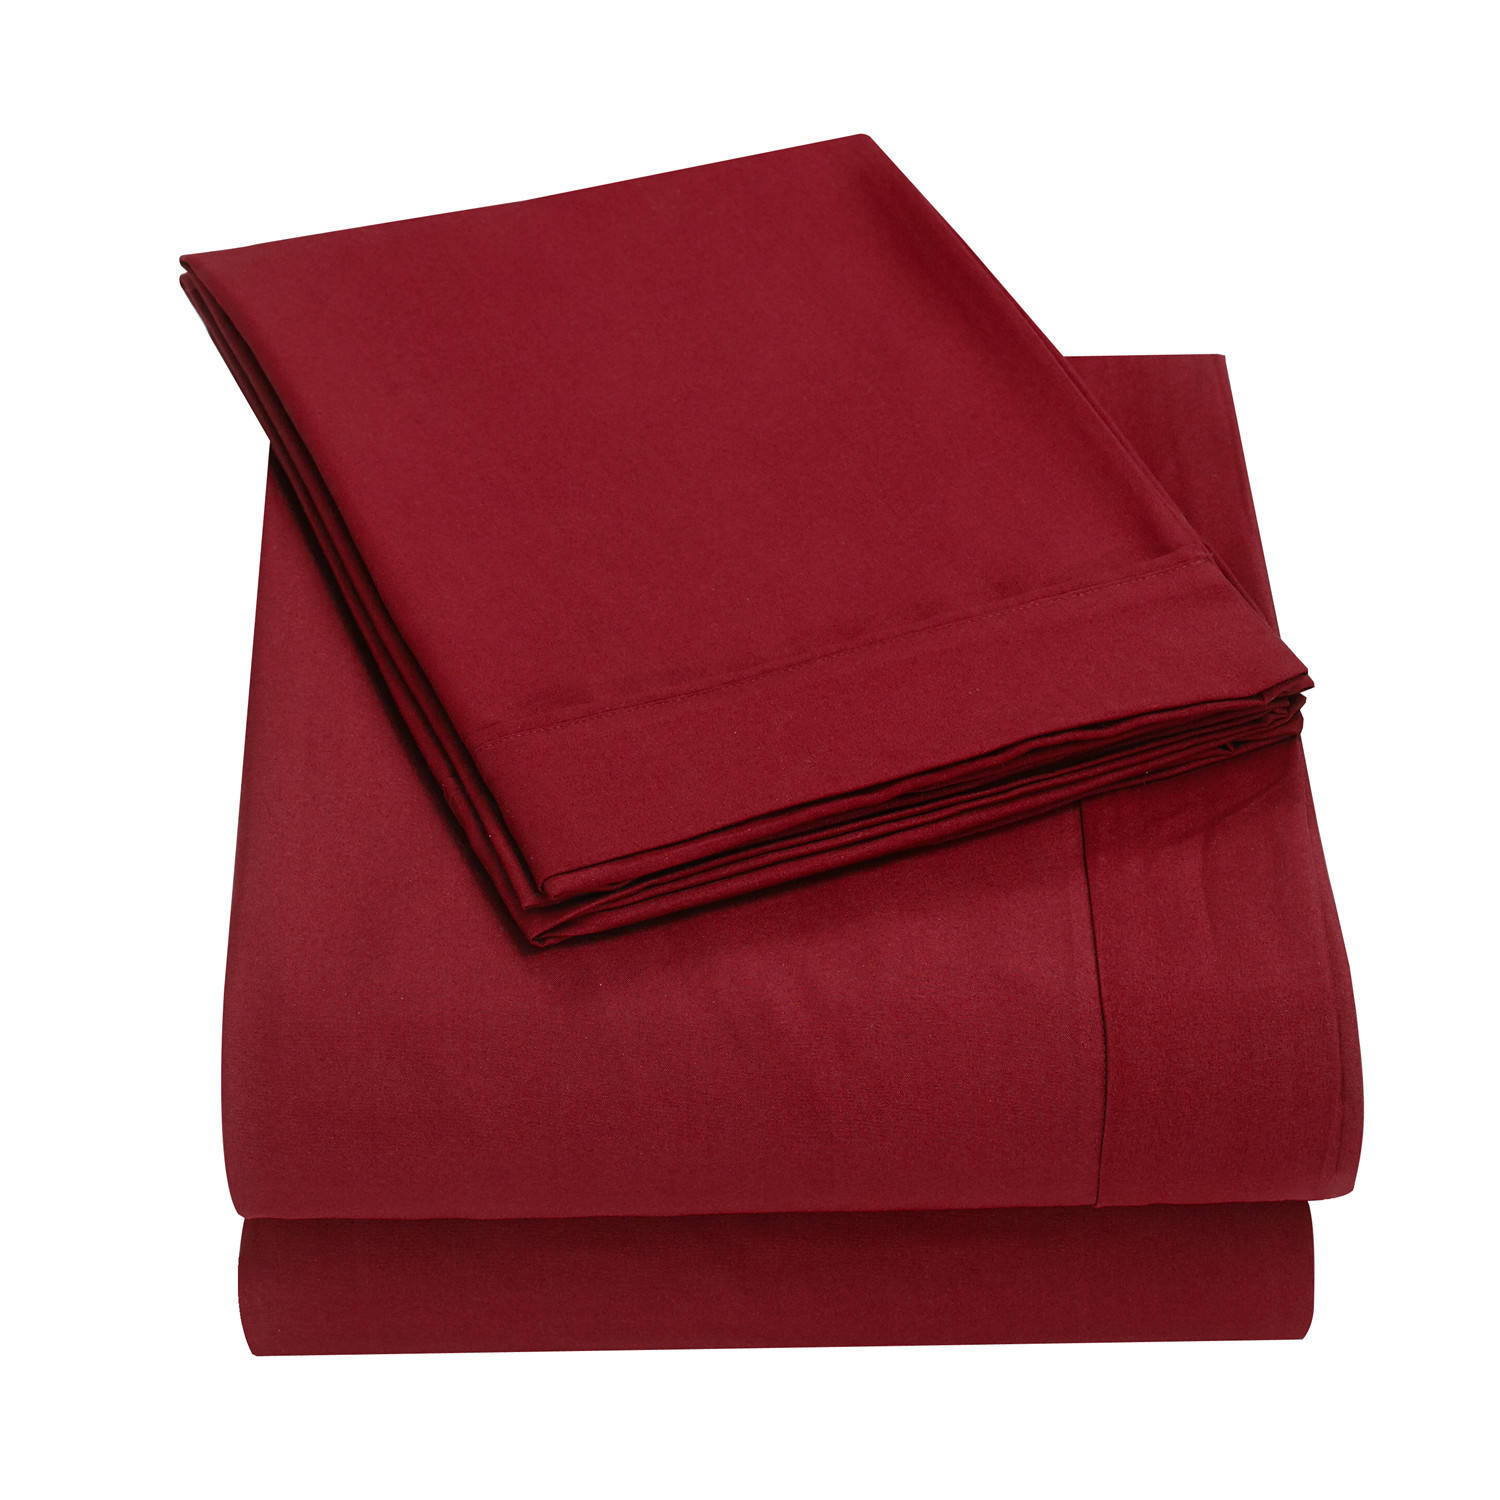 Soft Brushed Microfiber Bedding Sheet Set Shrinkage and Fade Resistant Easy Care 1 Fitted 1 flat Sheet 2 pillowcase